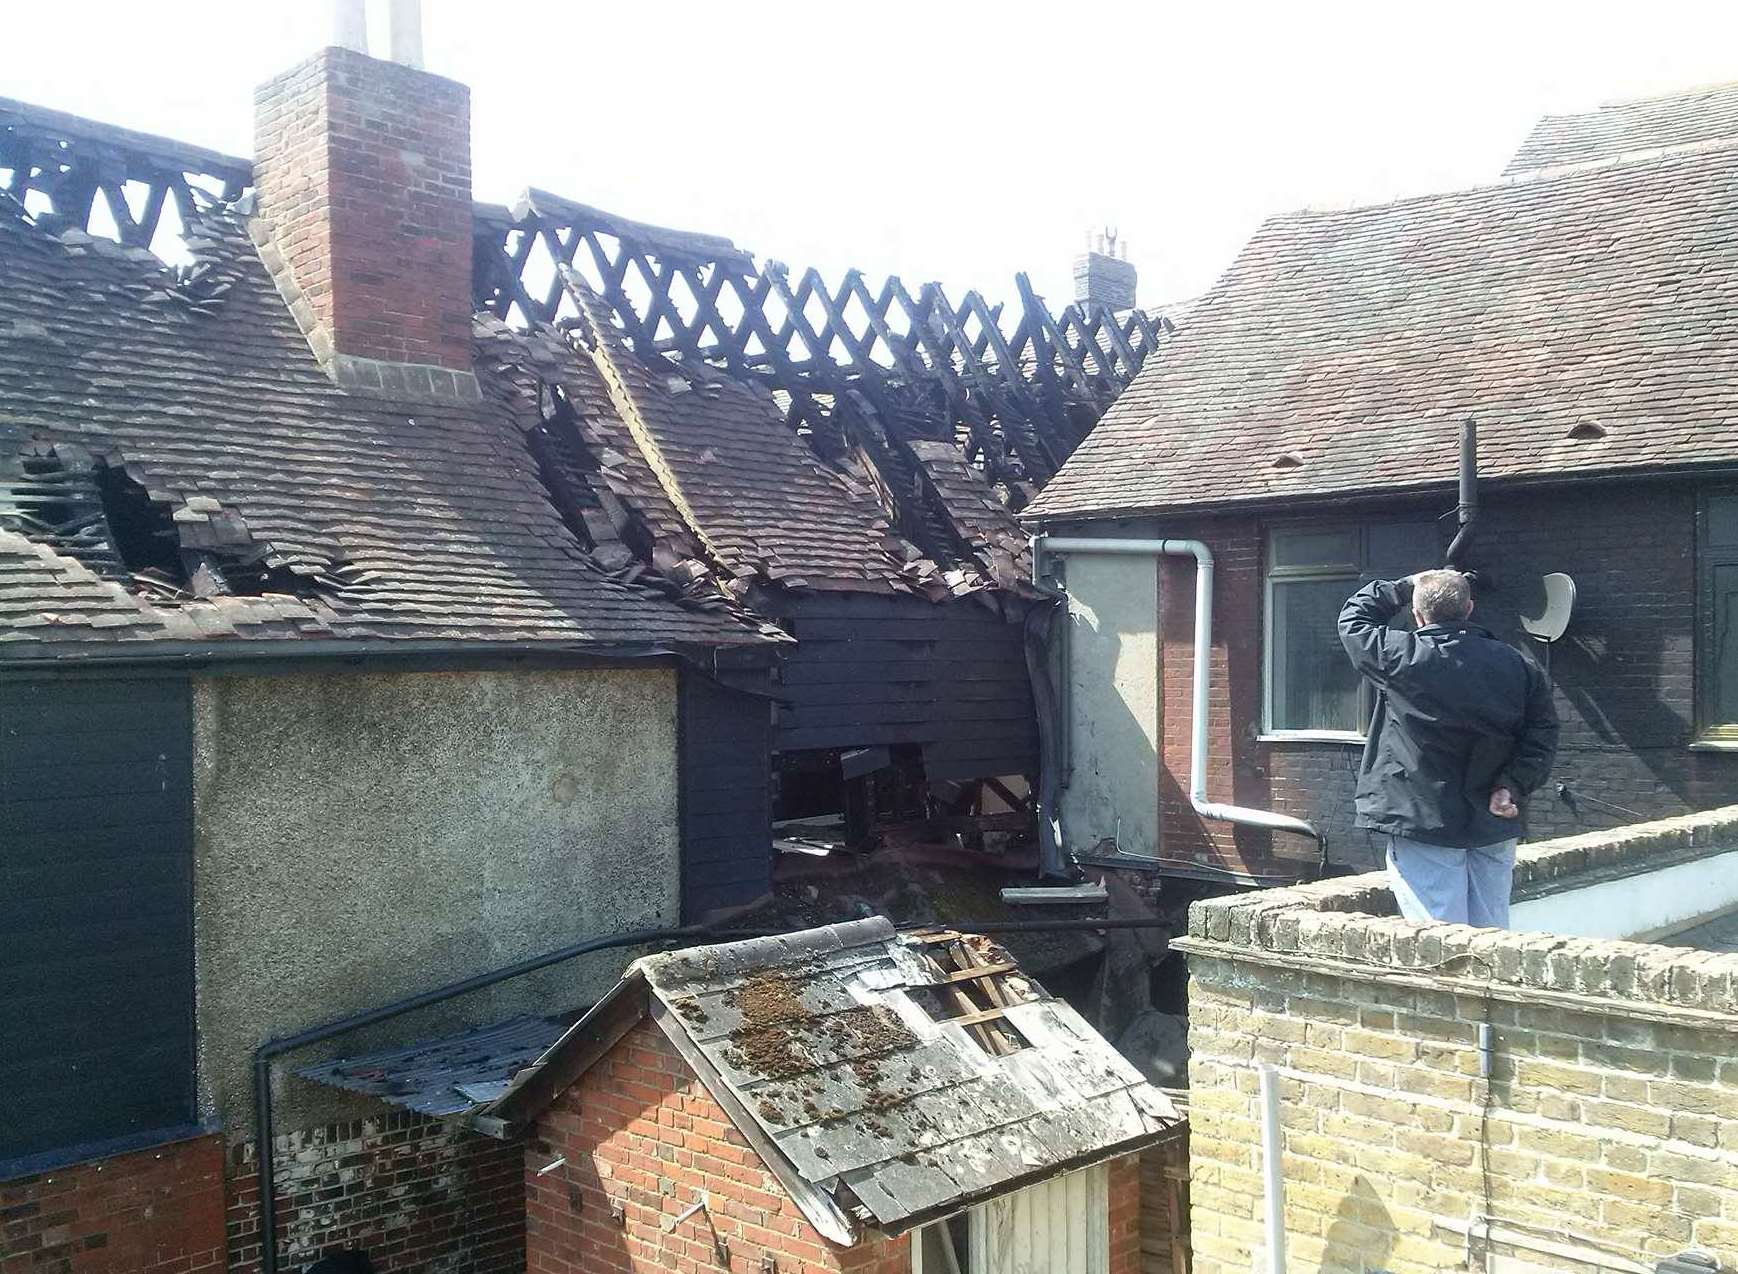 New pictures show the extent of the damage in the roof of one of the buildings affected. Picture: Oliver Sebastien.